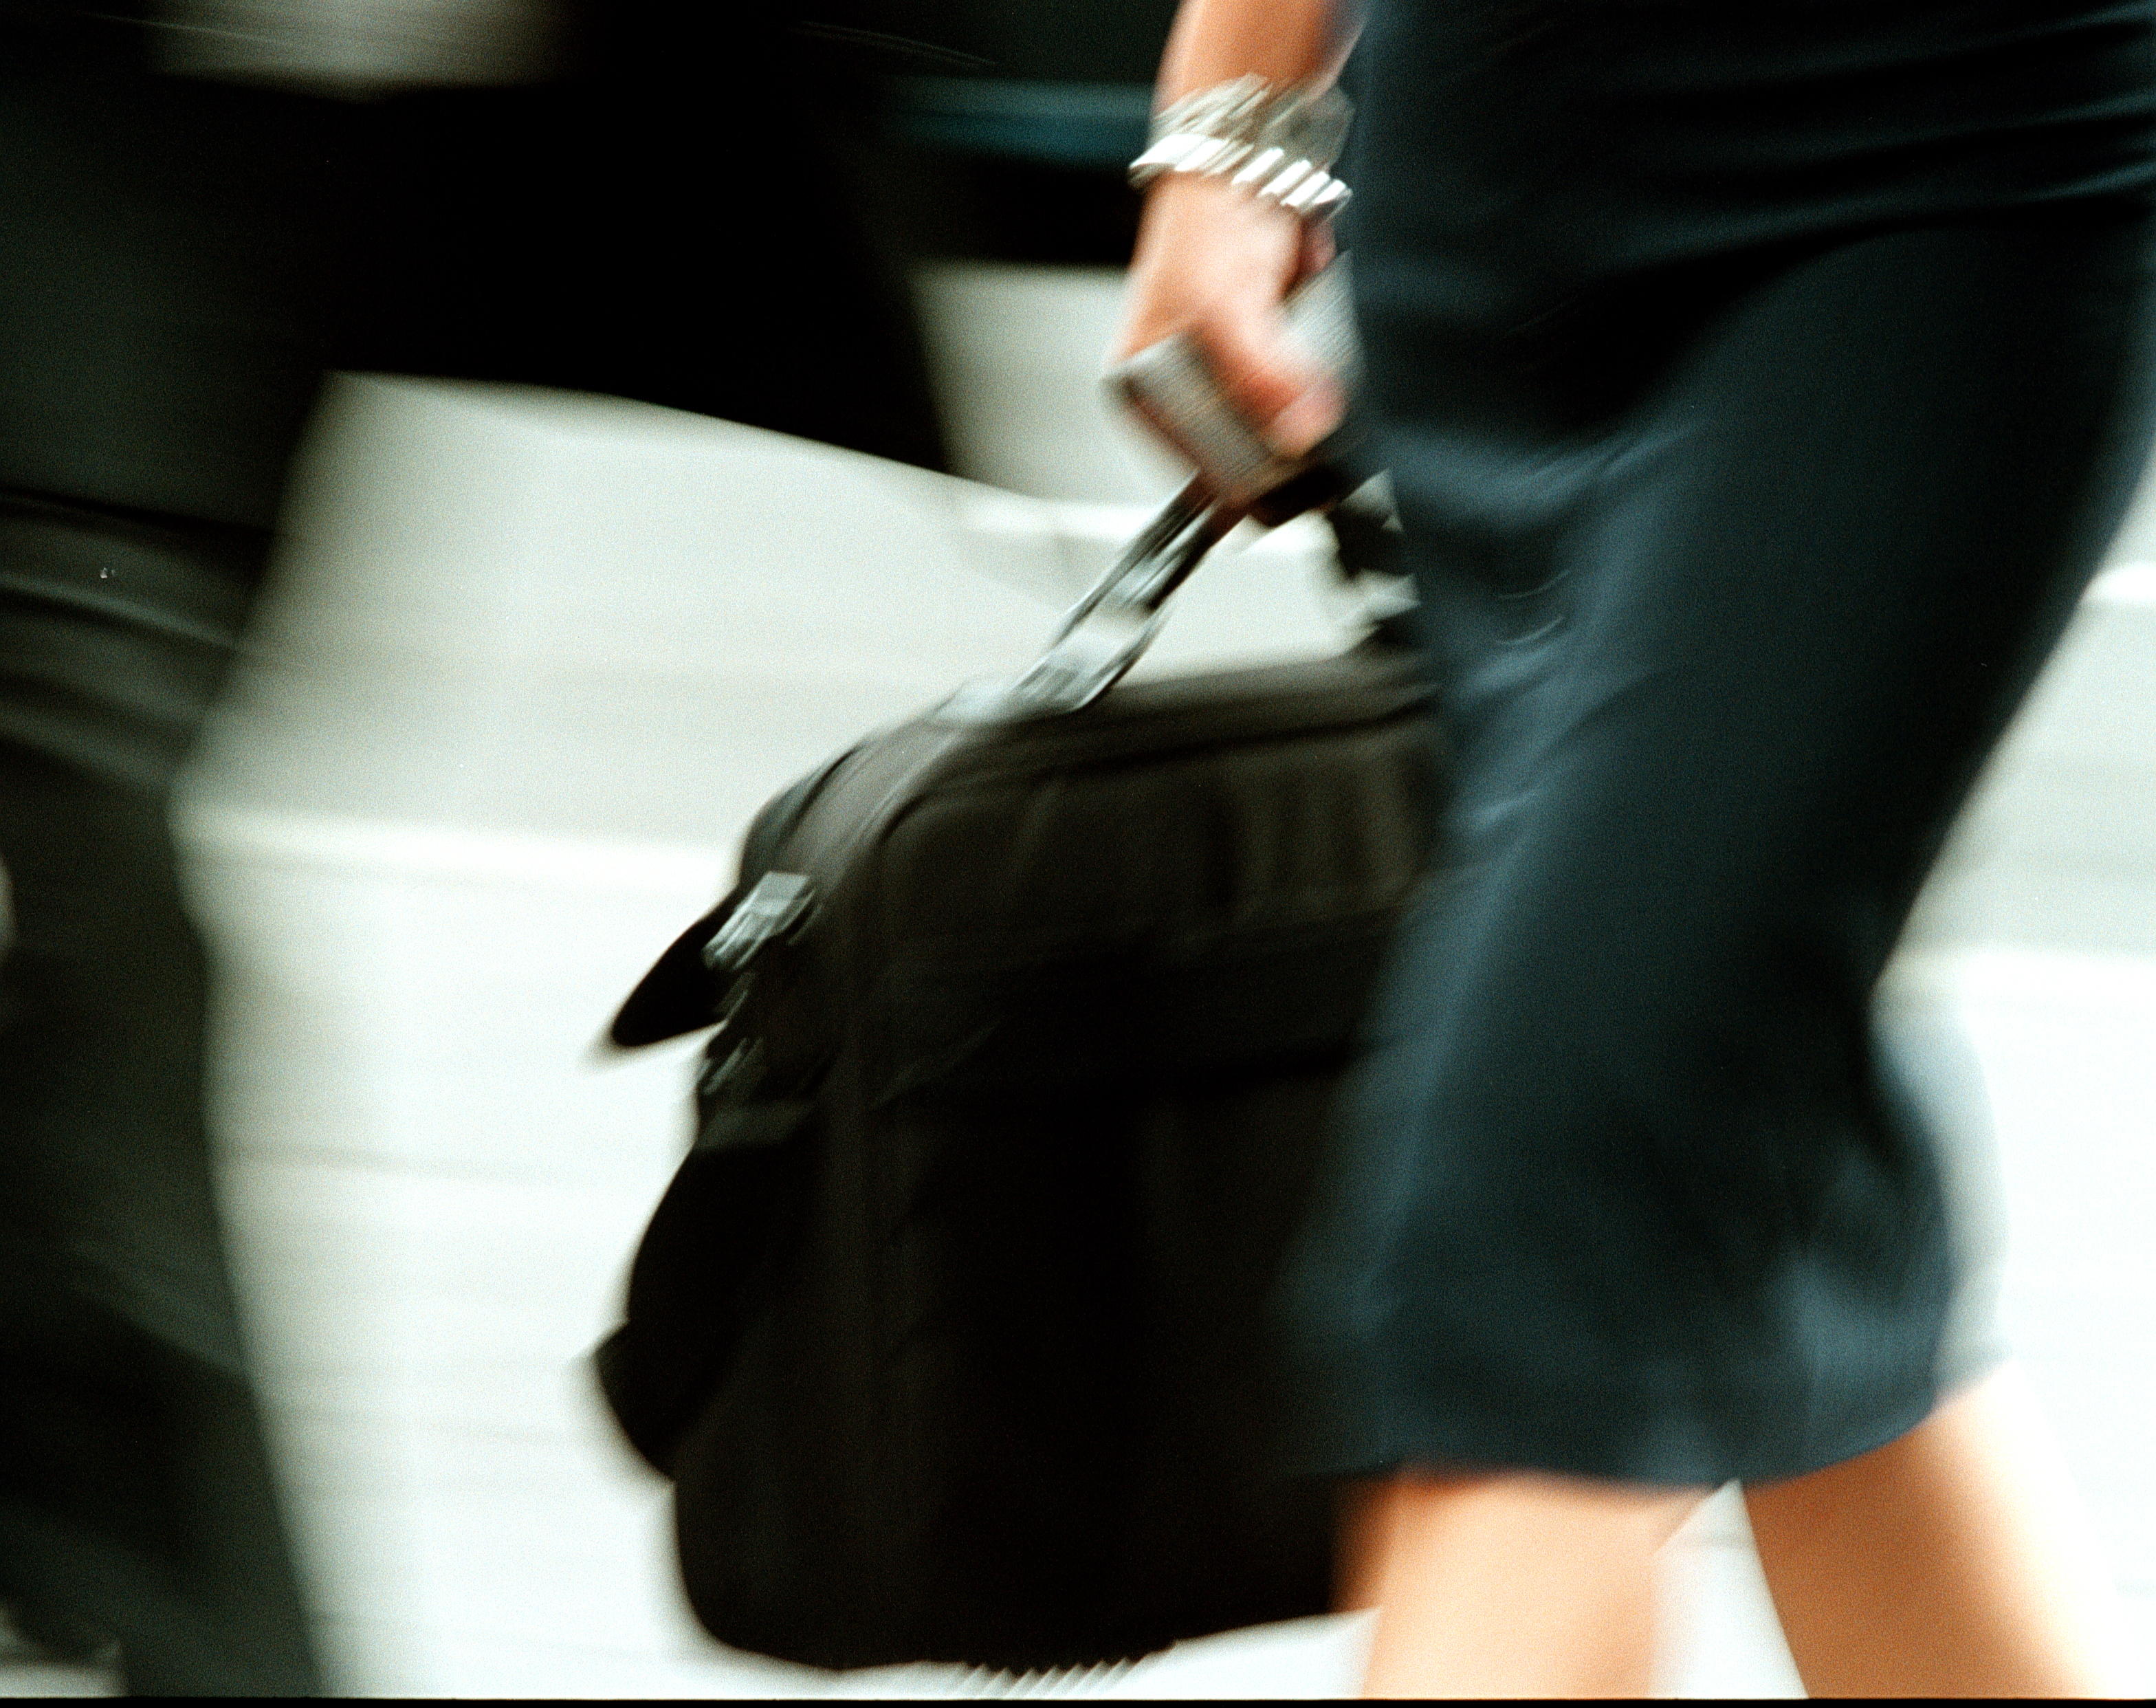 Detail of a businesswoman with a black briefcase